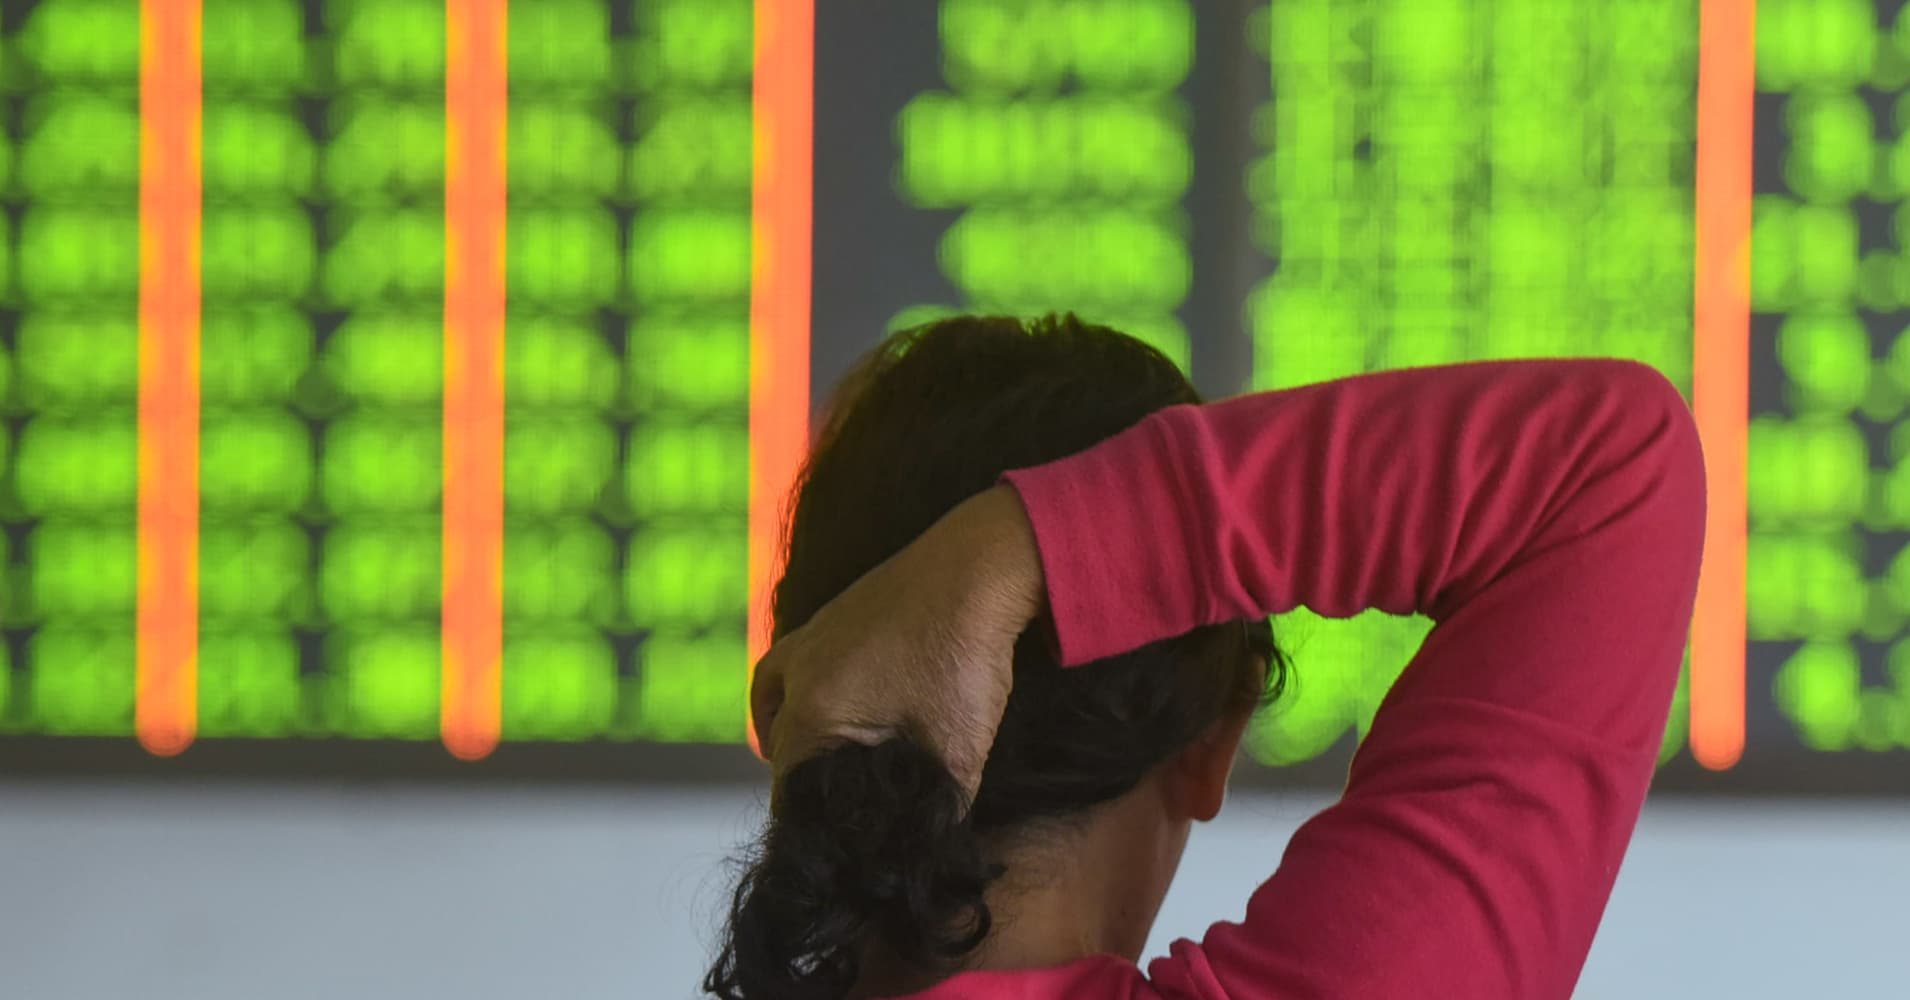 Chinese markets' 2018 performance was their worst in a decade